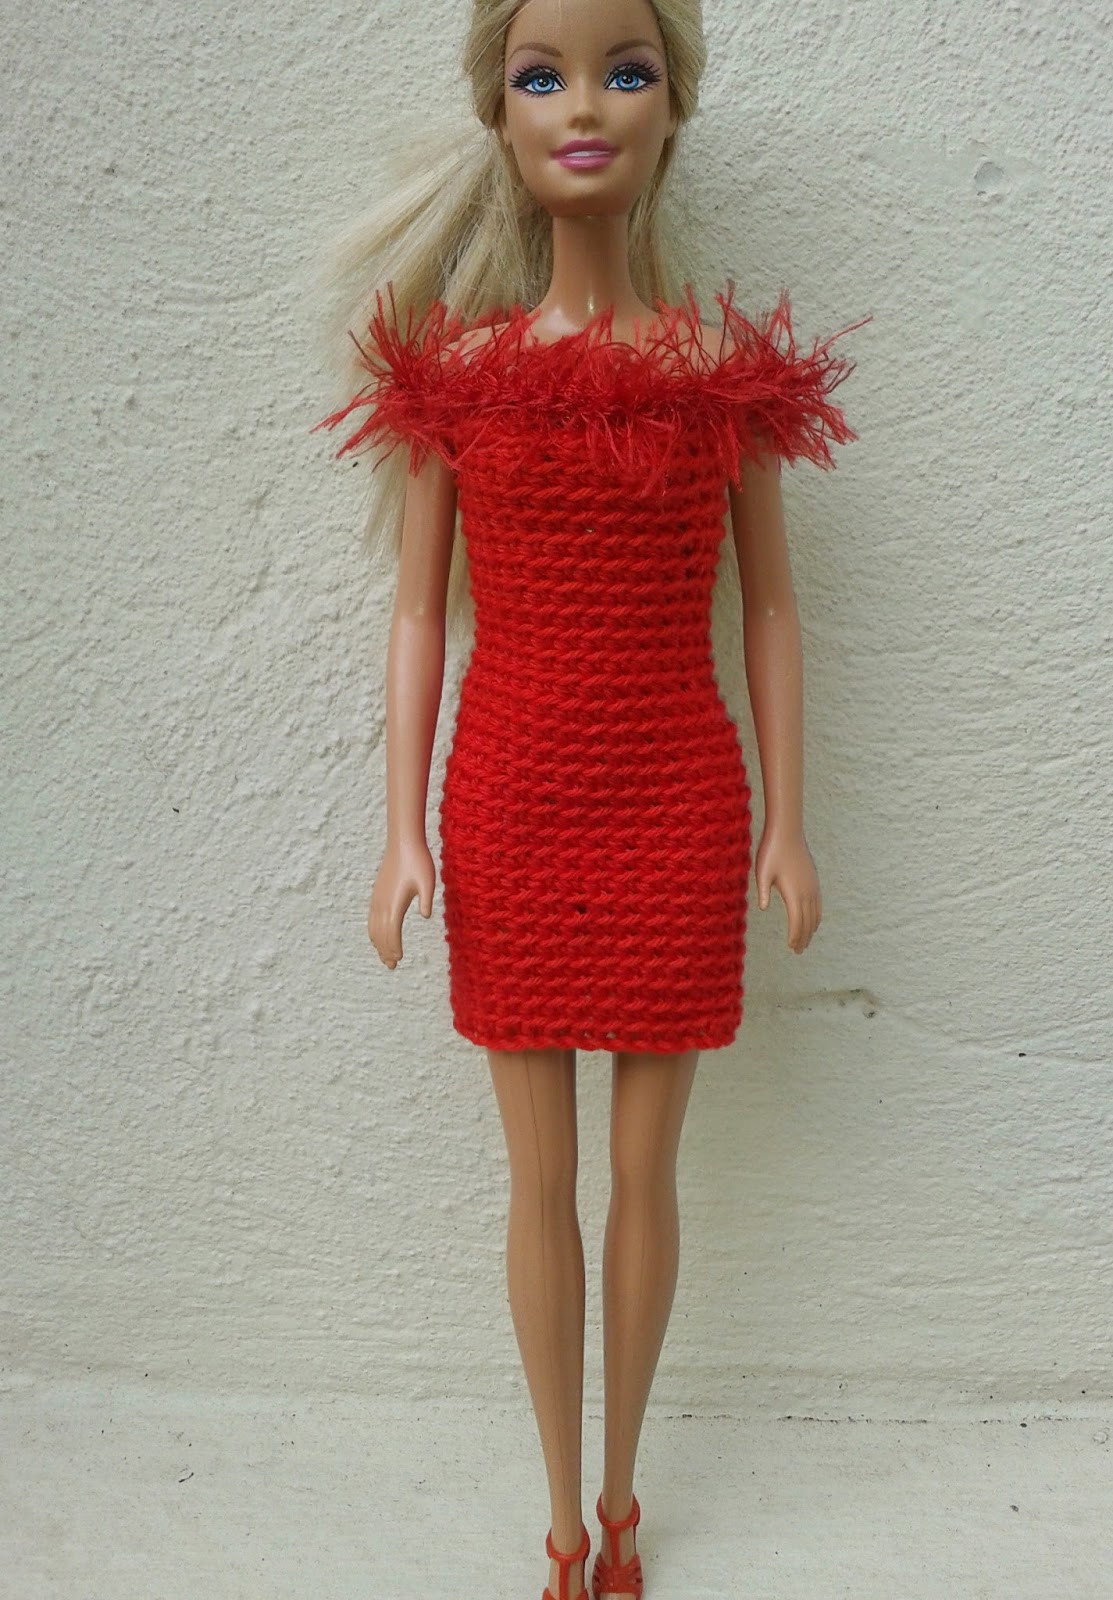 Free Barbie Crochet Patterns Beautiful Linmary Knits Barbie In Red Crochet Dresses Of Awesome 43 Pics Free Barbie Crochet Patterns